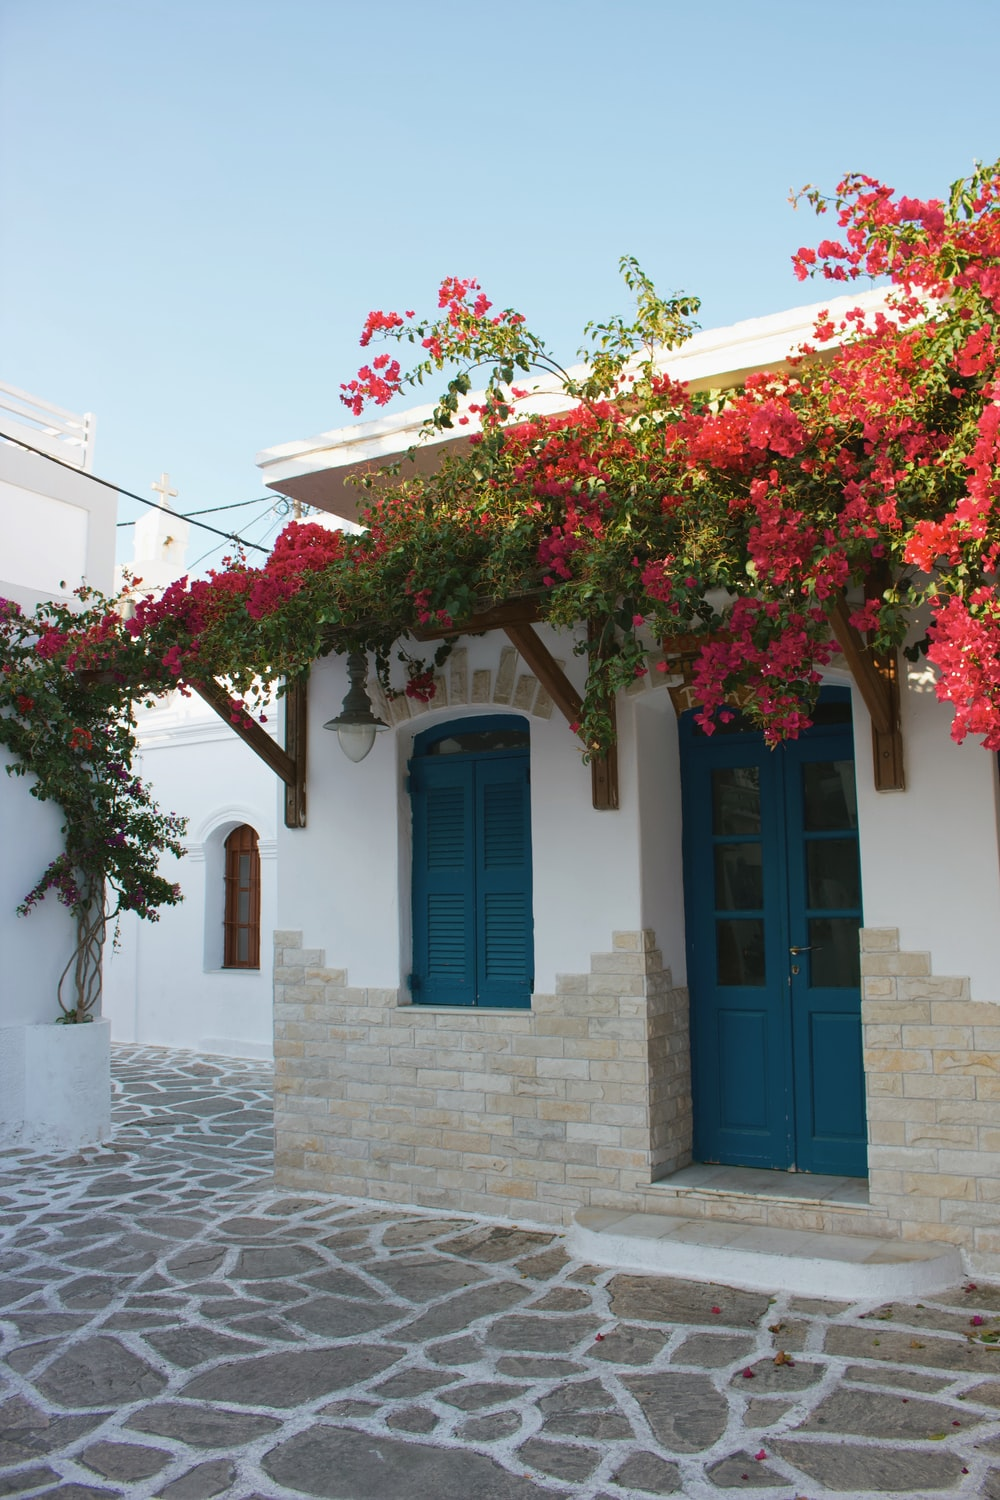 house with awning and flowers during day